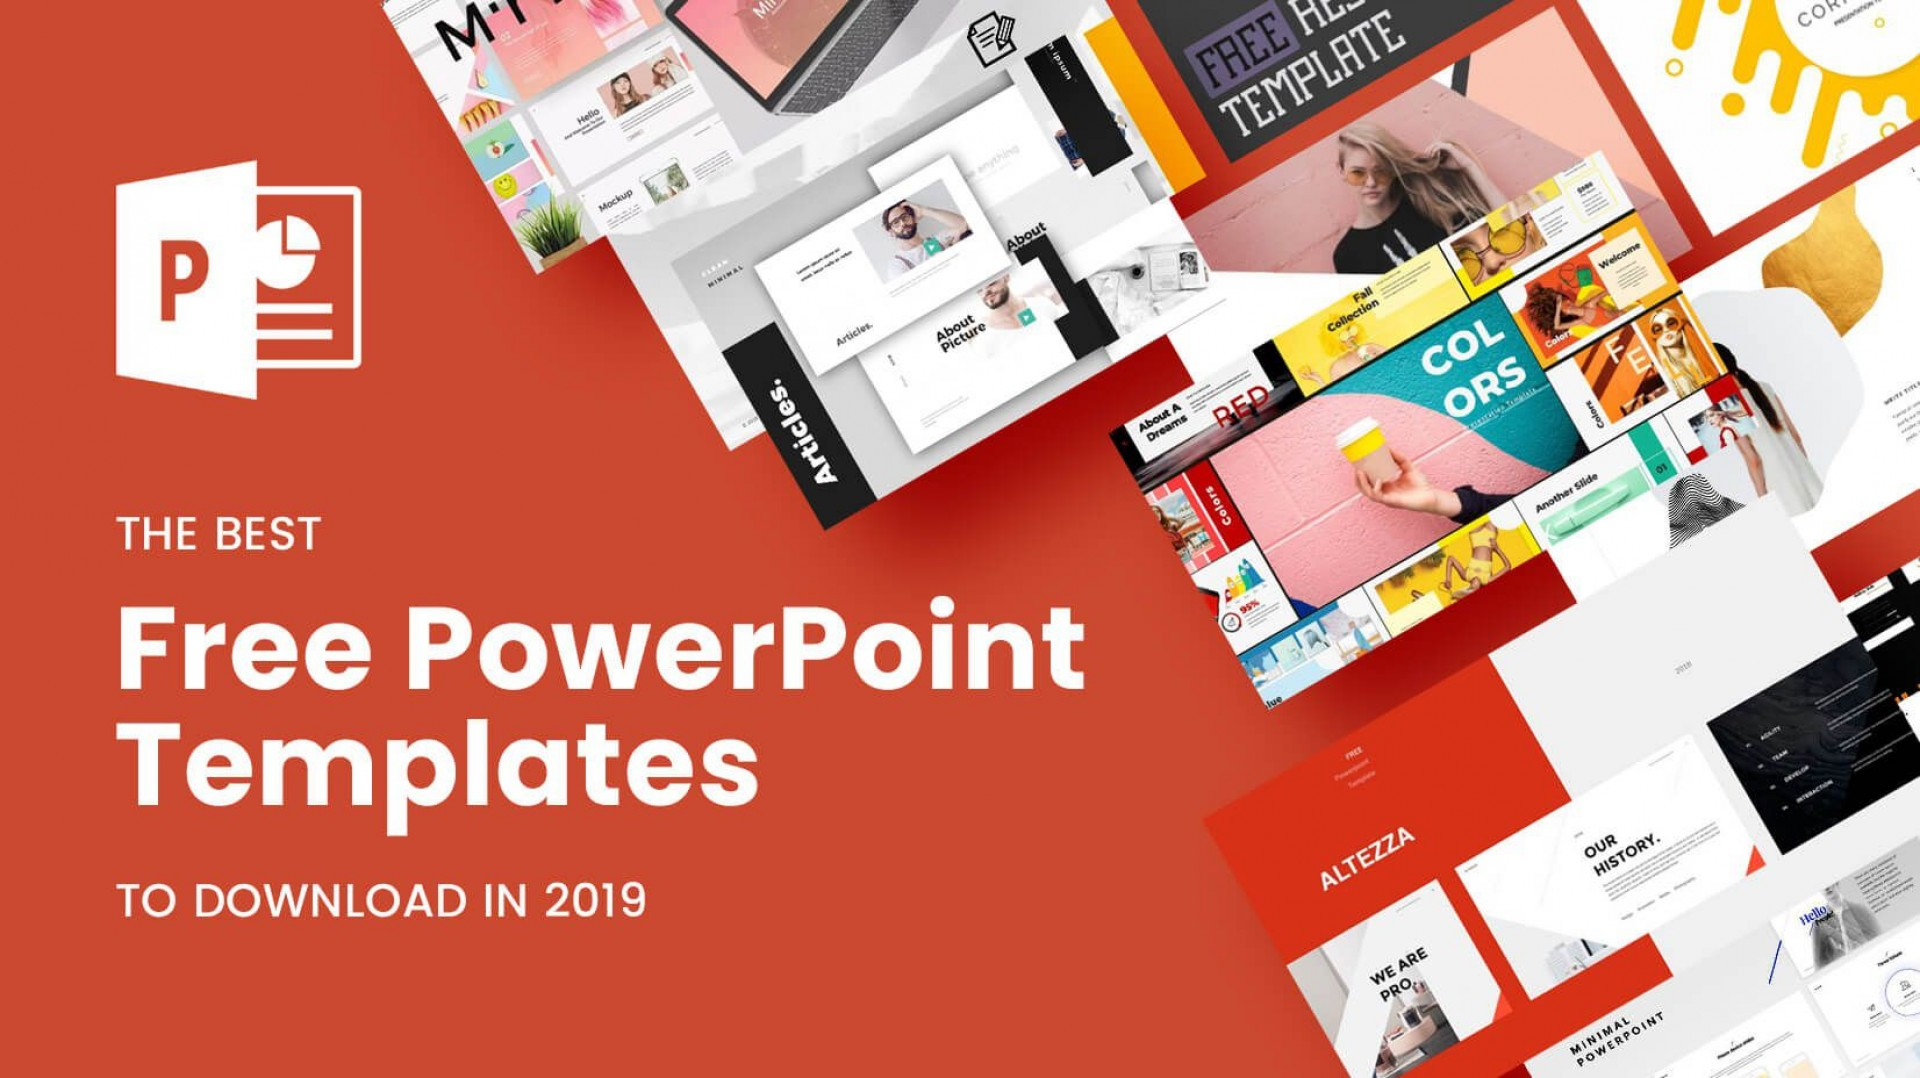 010 Staggering Ppt Template Free Download Highest Clarity  Powerpoint 2020 Microsoft History 20181920